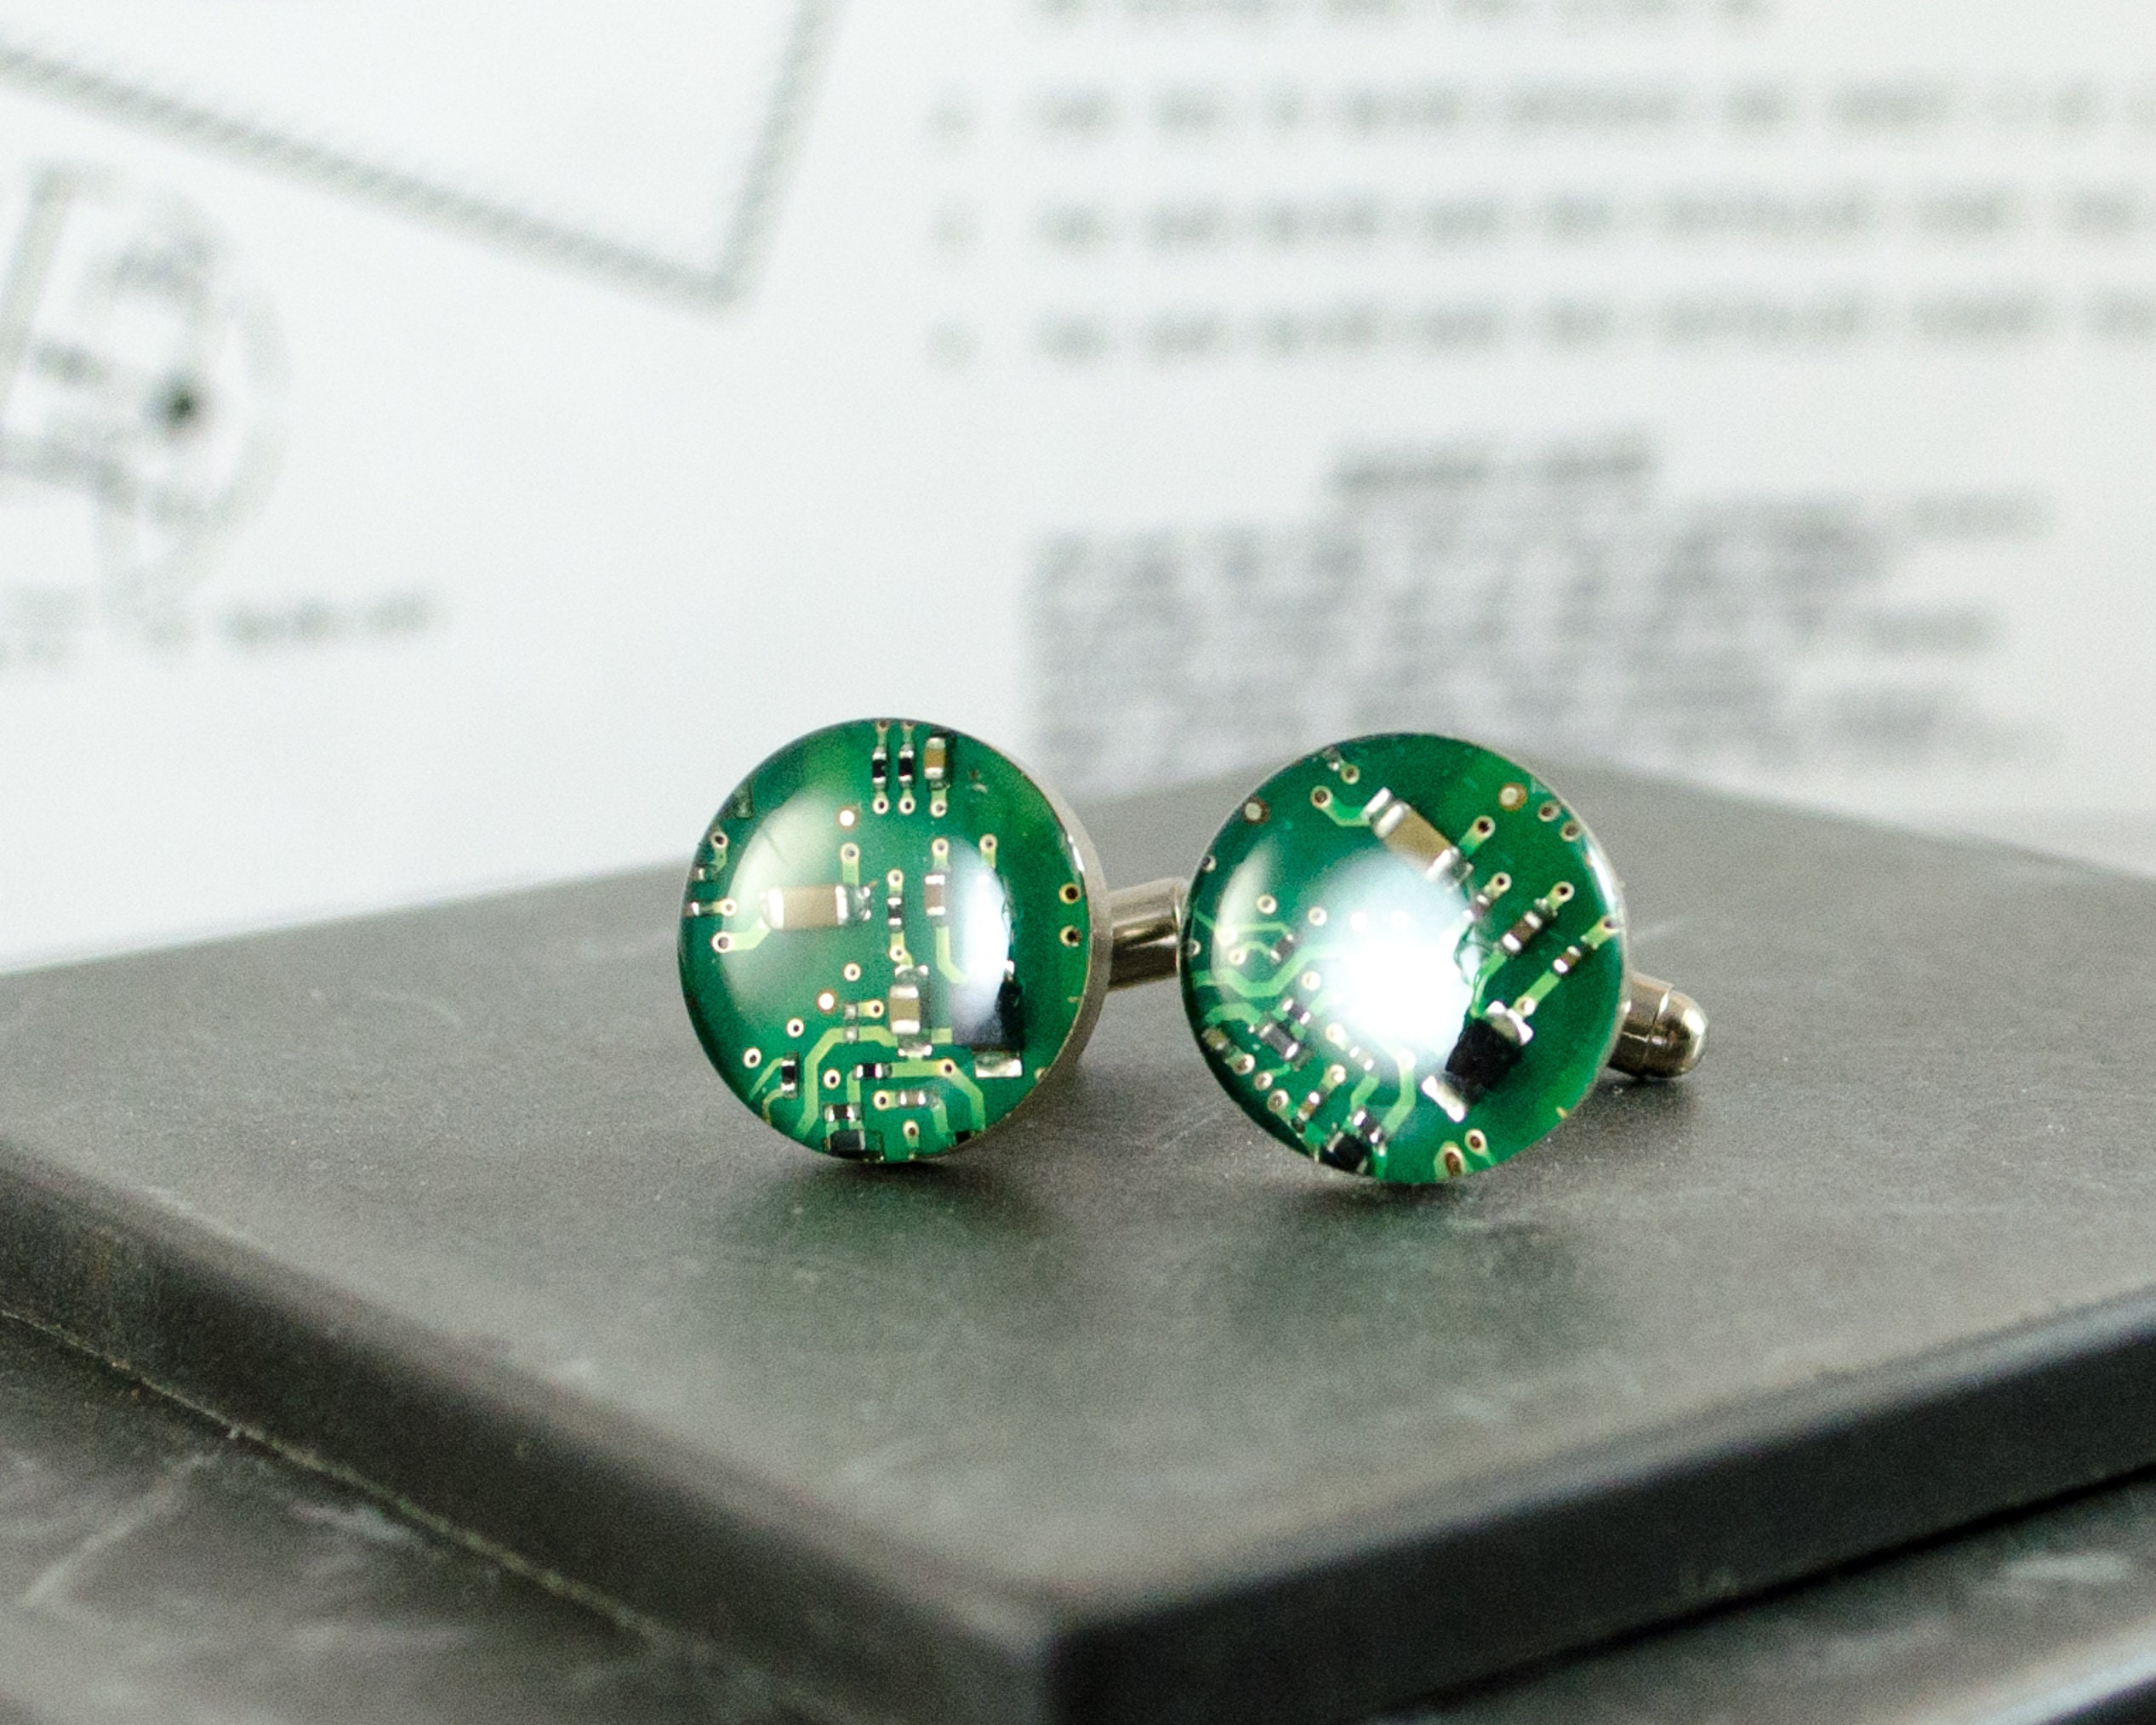 Green Circuit Board Cuff Links Computer Jewelry Wearable Etsy Necklace Geekery Nerd Upcycle Recycle 50